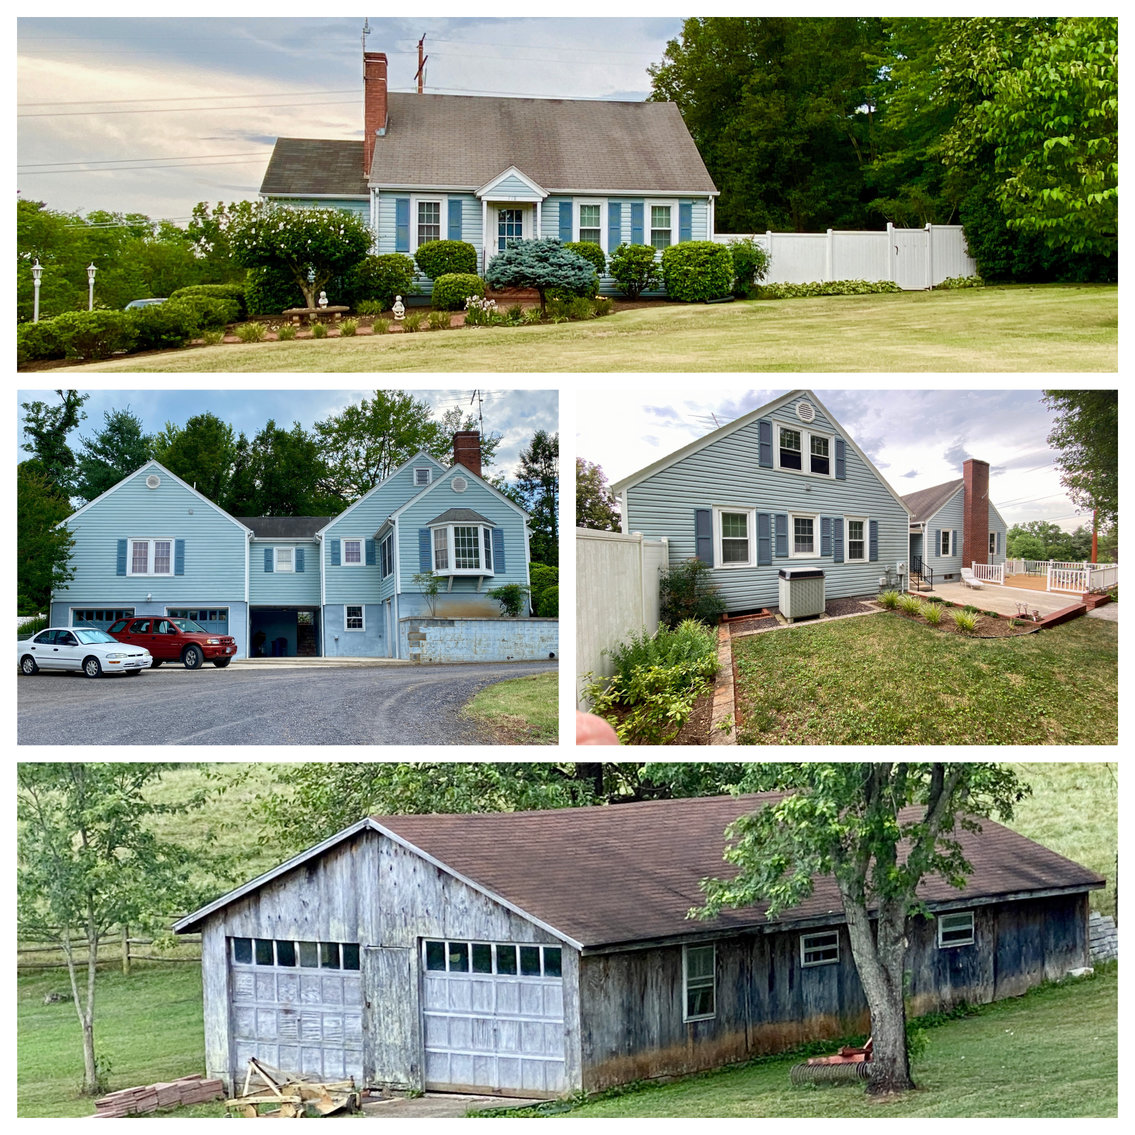 Image for 3 BR/2 BA Home w/Detached Shop/Garage on 1.8 +/- Acres in the Town of Orange, VA